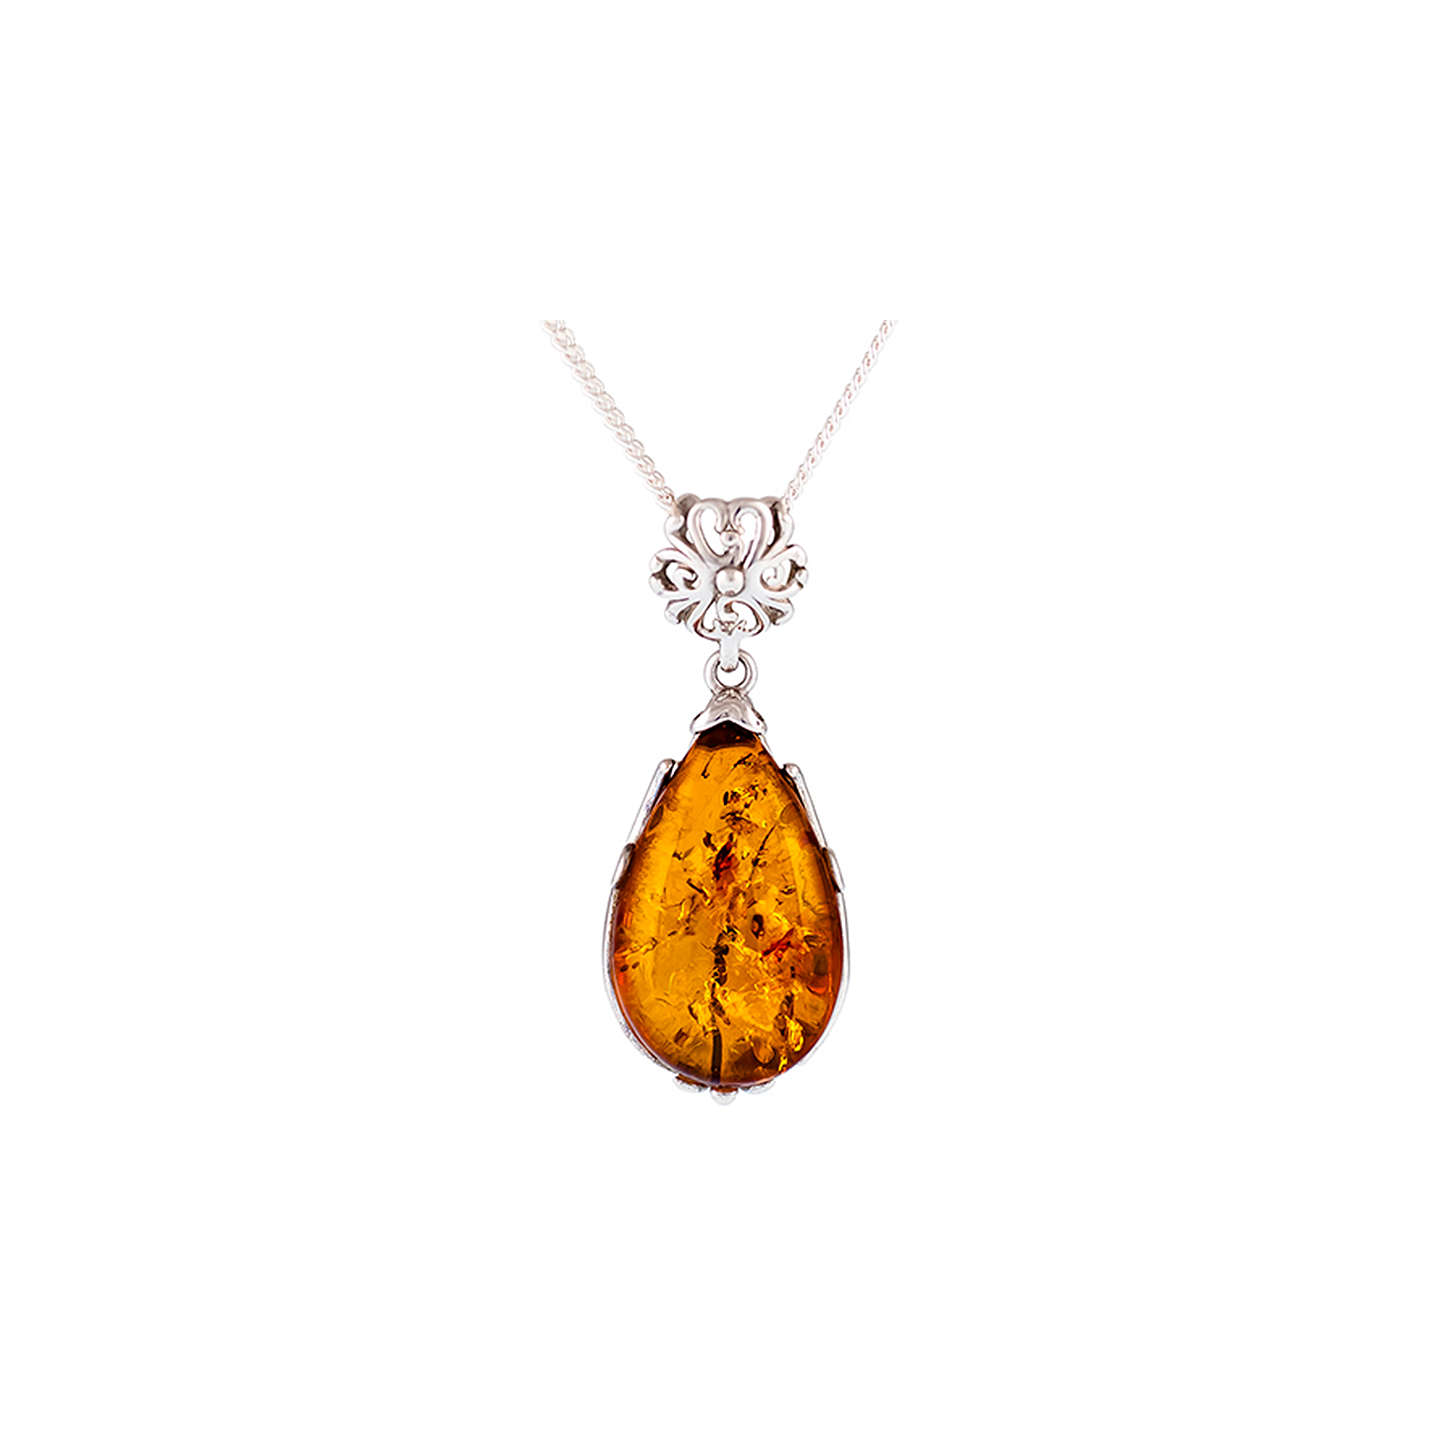 buybe rsp shaped main pear necklace amber com johnlewis at pendant cognac john be jewelled lewis online pdp shape